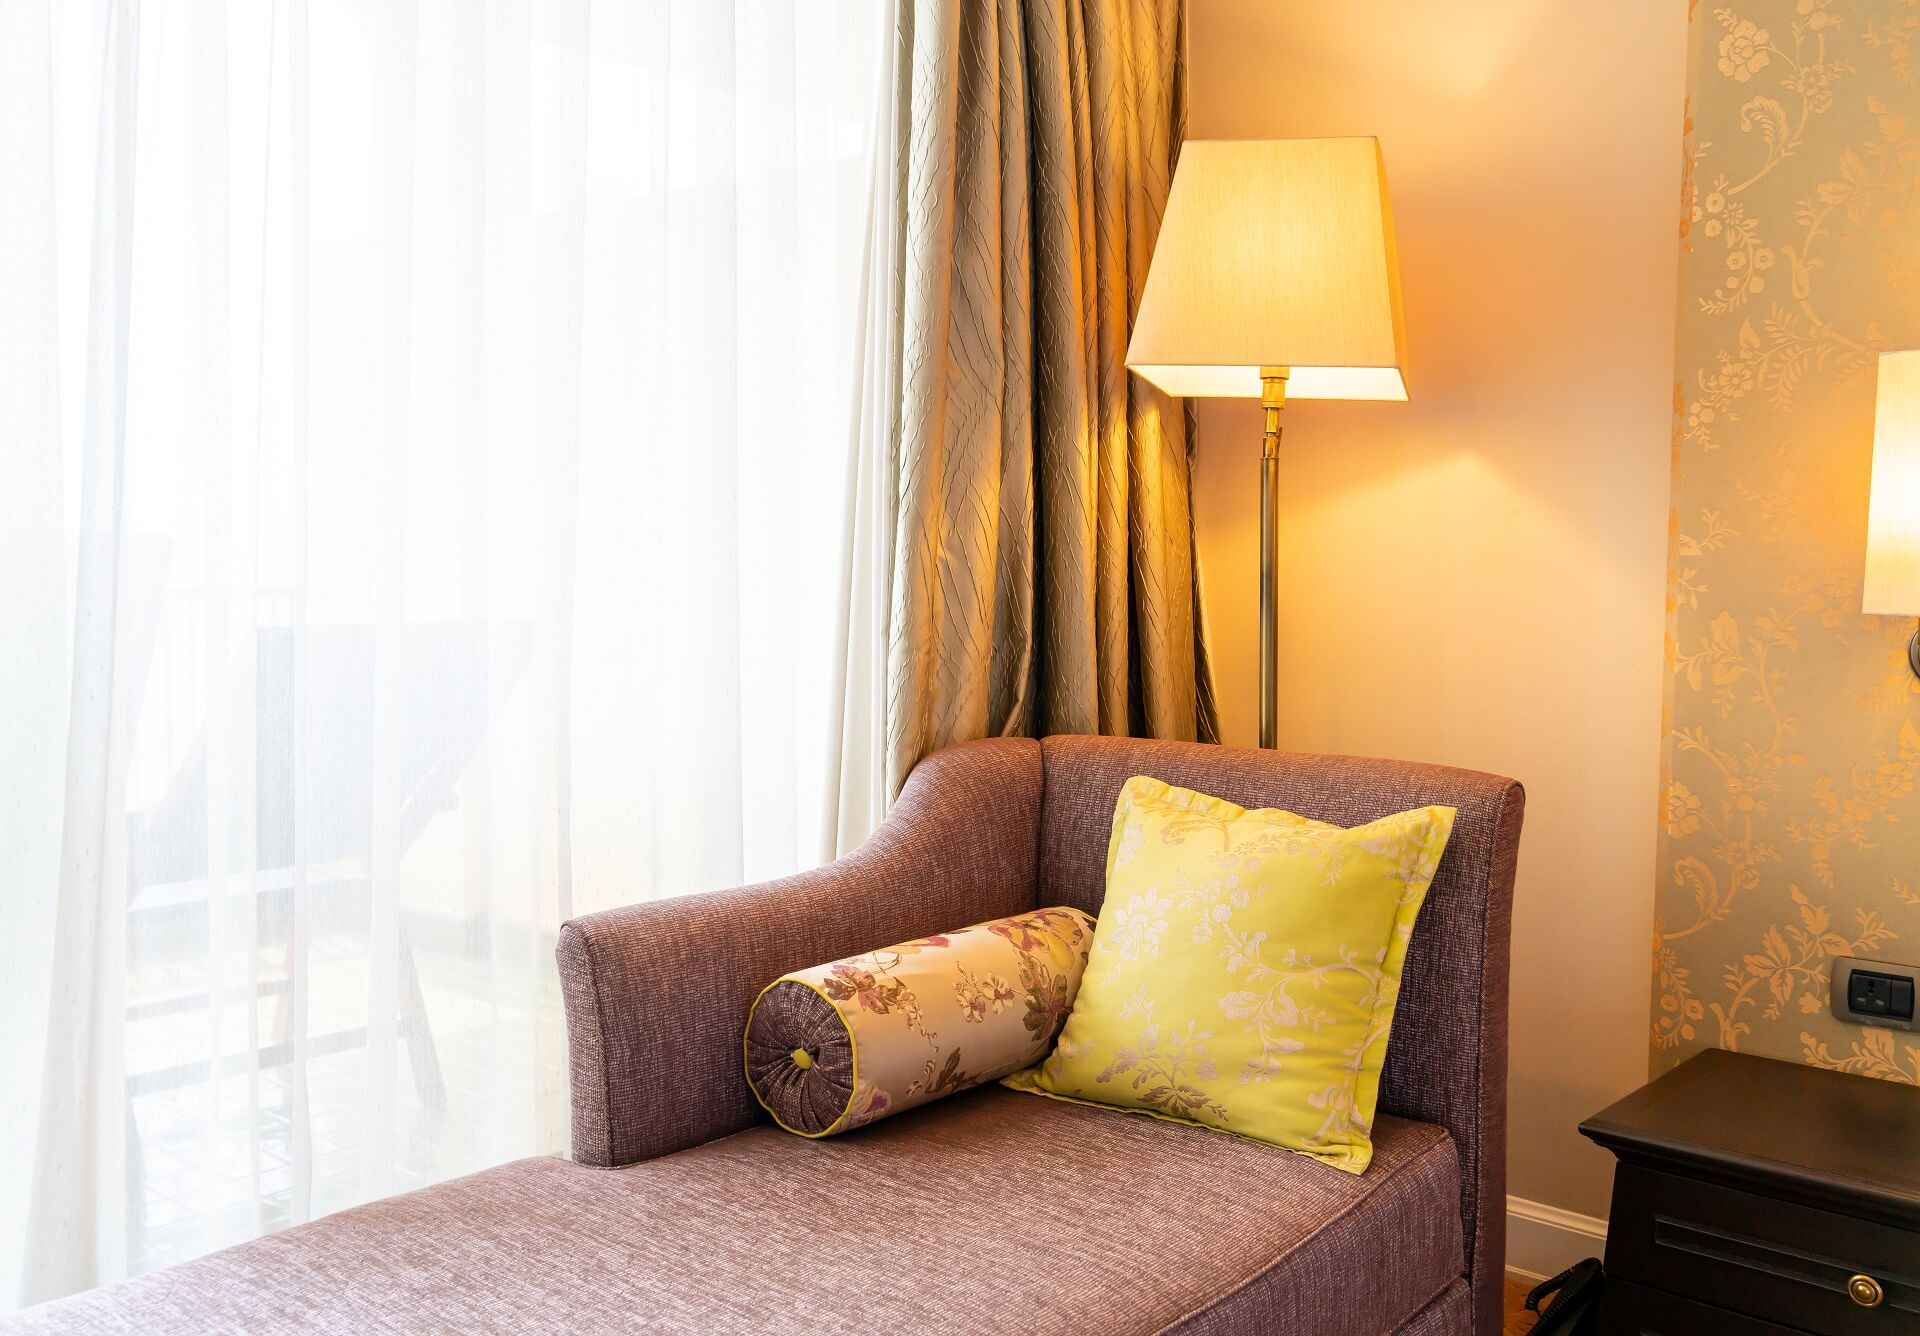 What Curtains Go Well With Yellow Walls, What Color Curtains With Yellow Walls